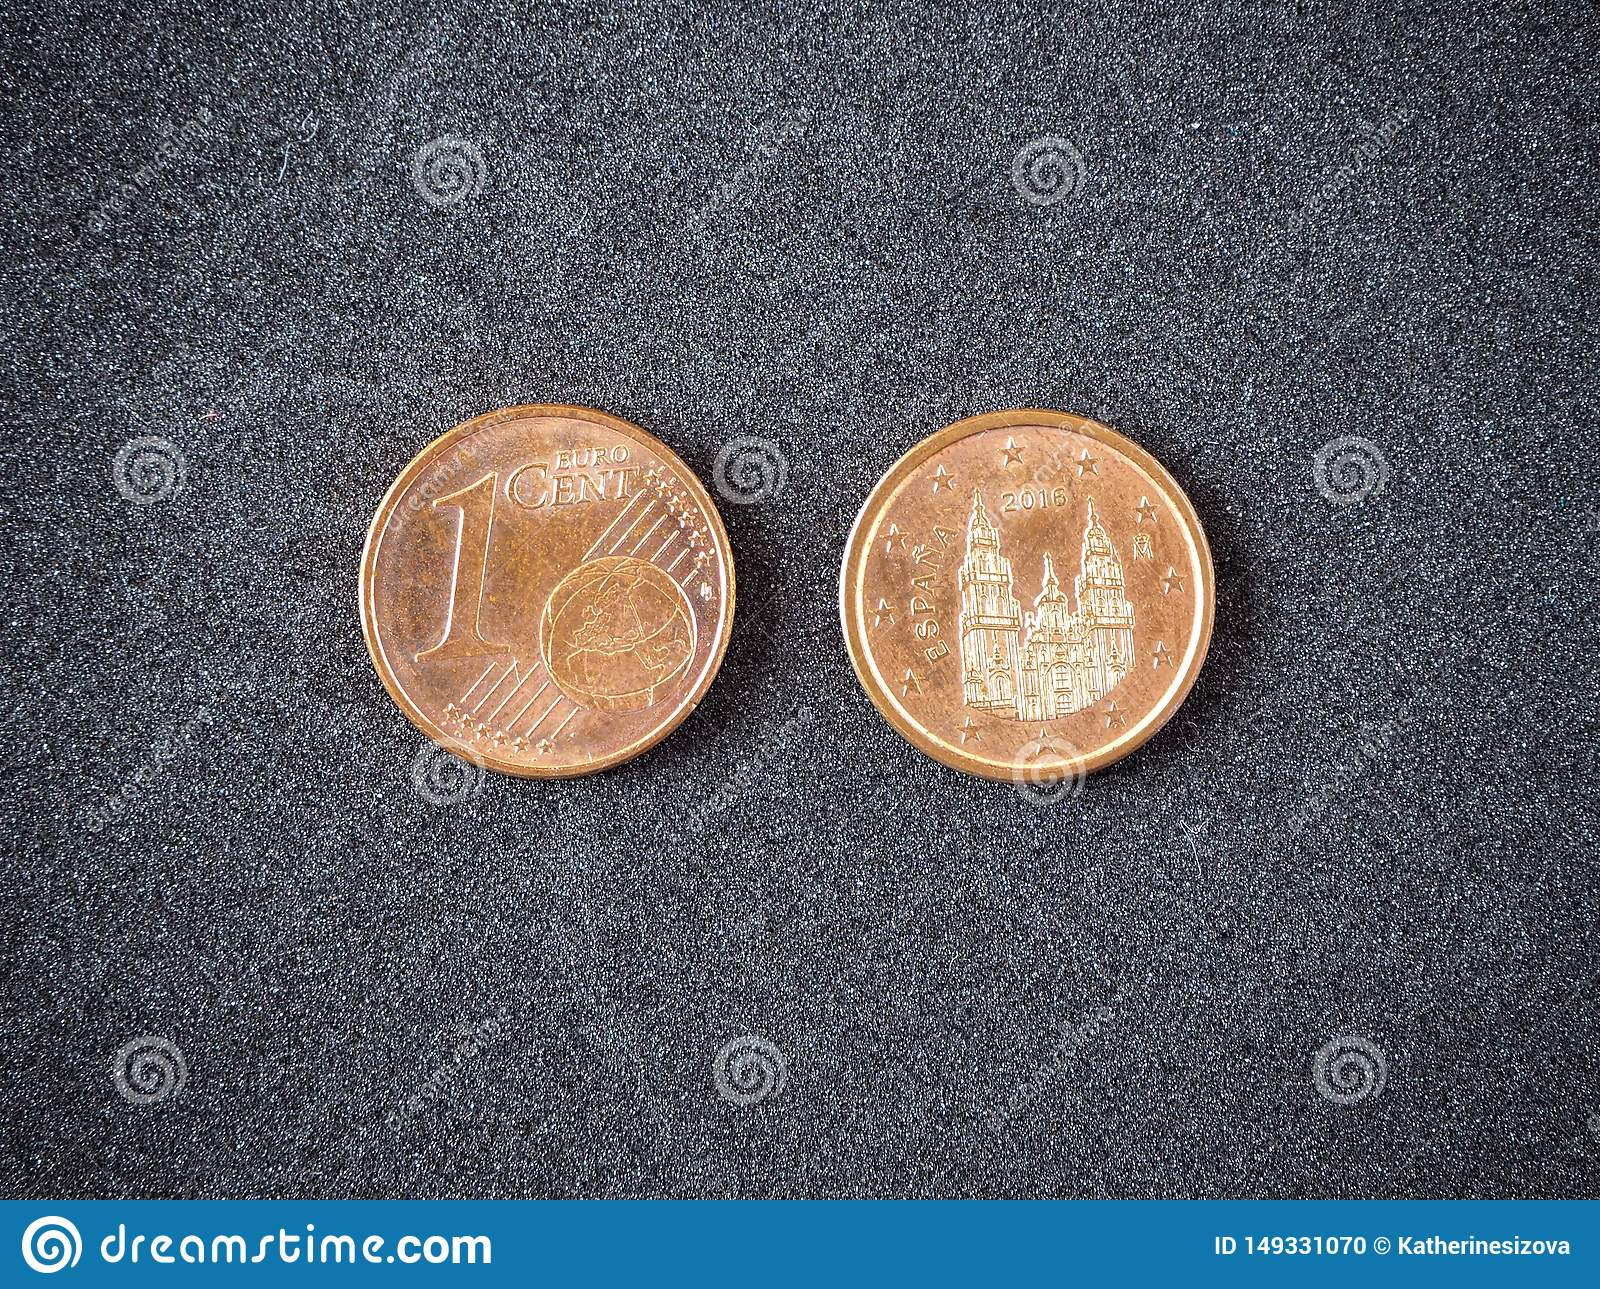 Spanish One Euro Coin Head And Tail On The Gray Background